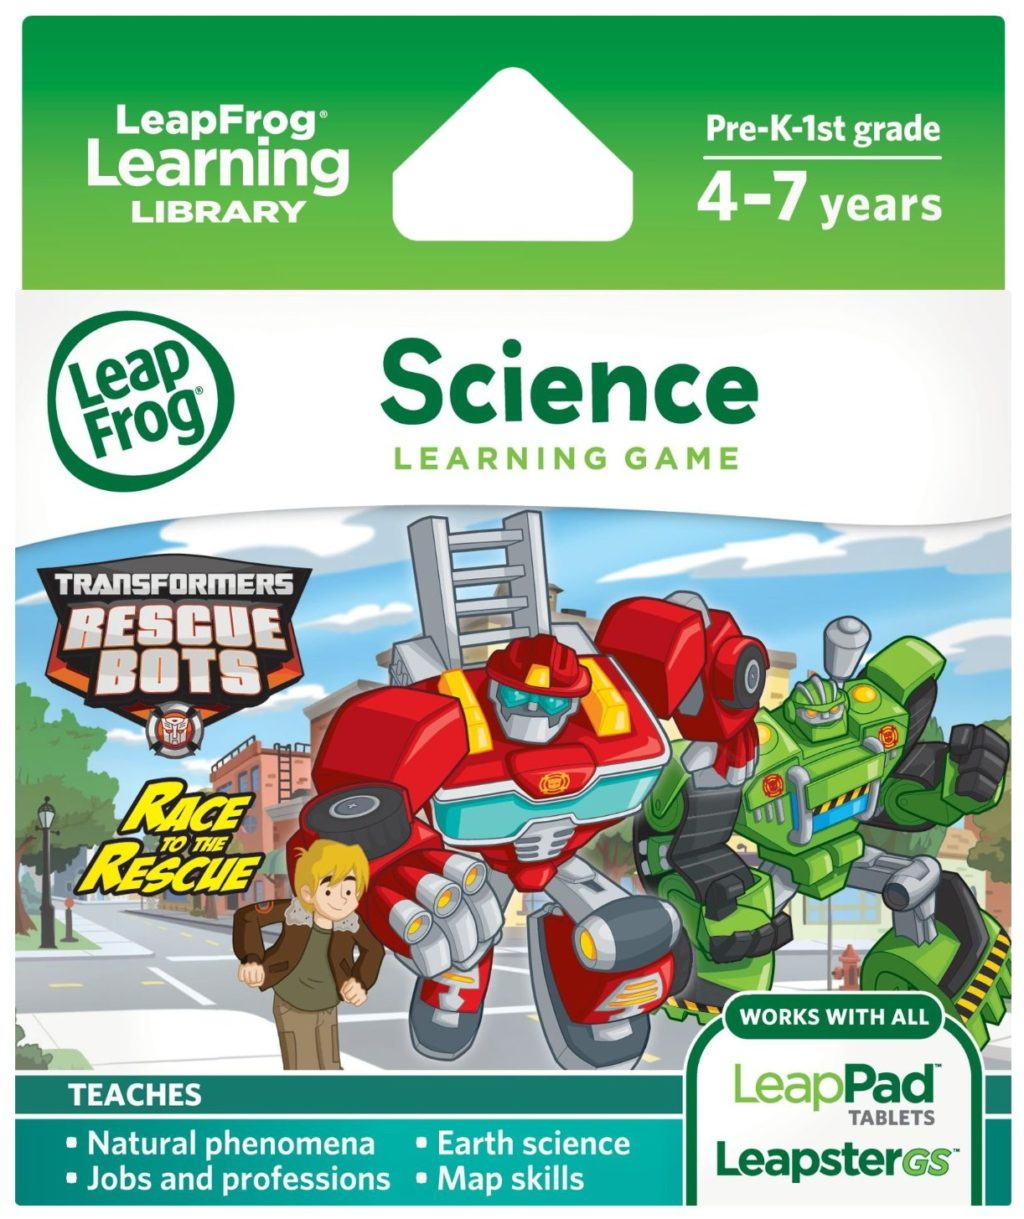 leapfrog-leappad-science-game-transformers-rescue-bots-race-to-the-rescue